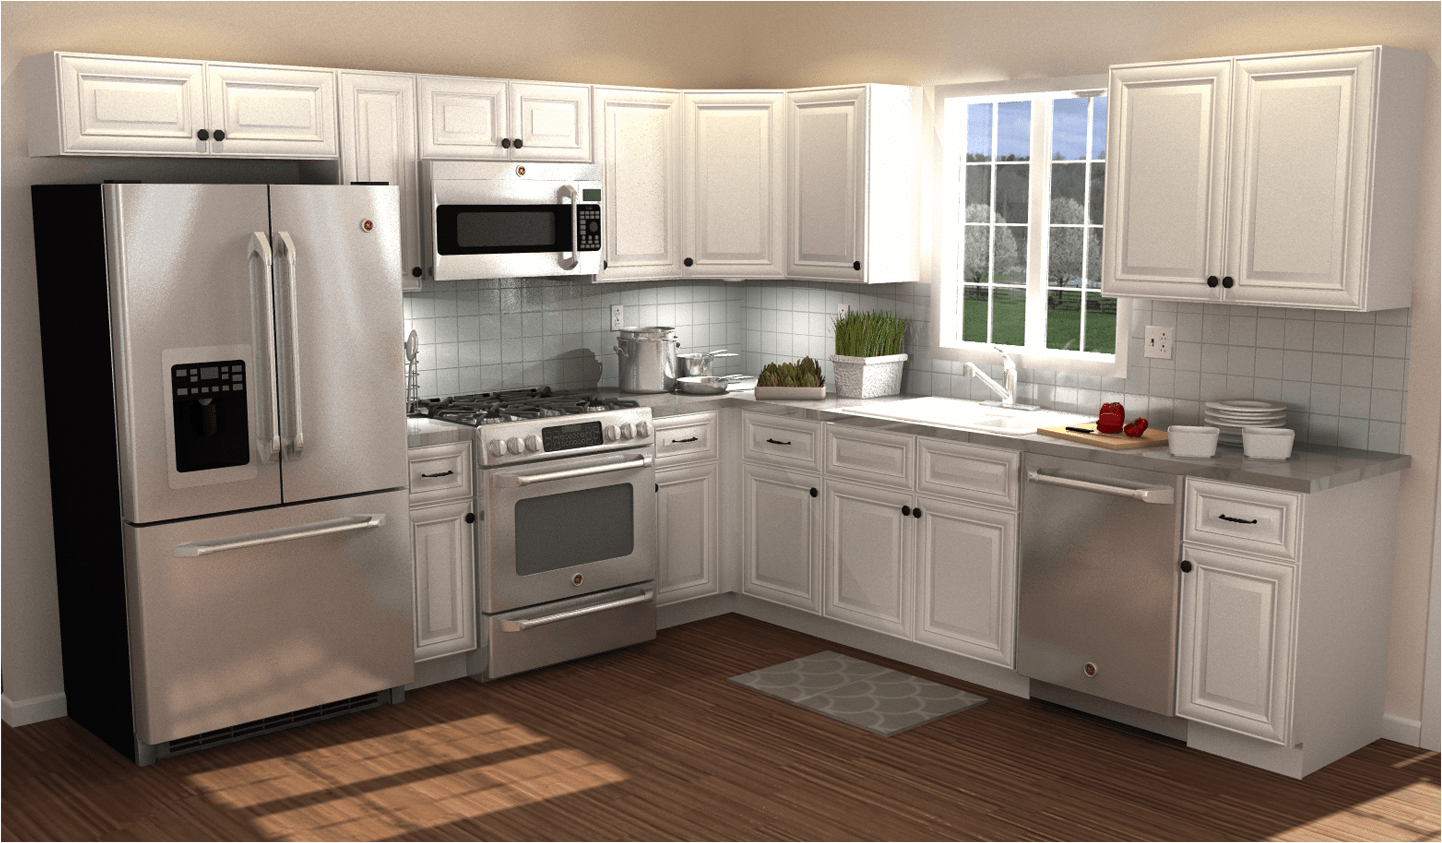 10x10 White Kitchen Cabinets 10 39 X 10 39 Kitchen Home Decorators Cabinetry